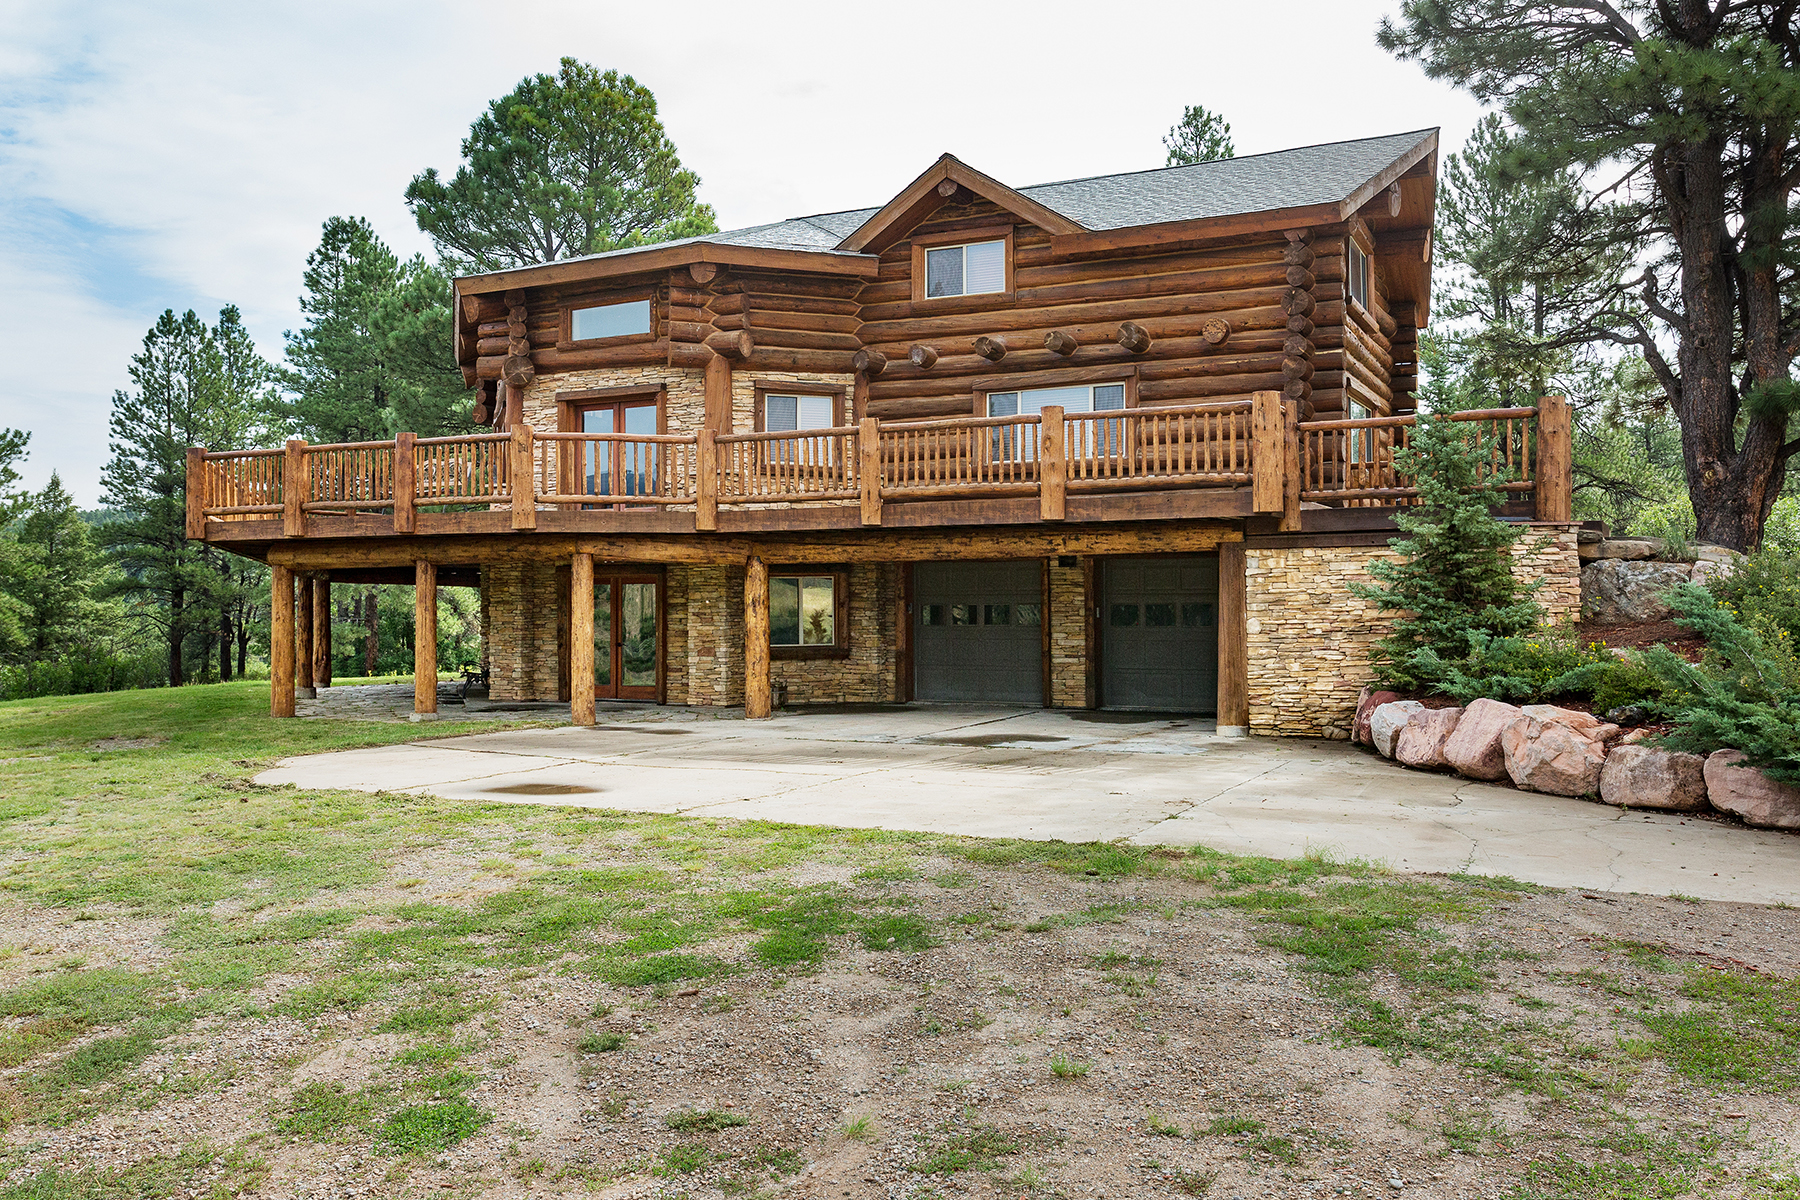 Single Family Home for Sale at 16295 W Hwy 160 Durango, Colorado, 81301 United States